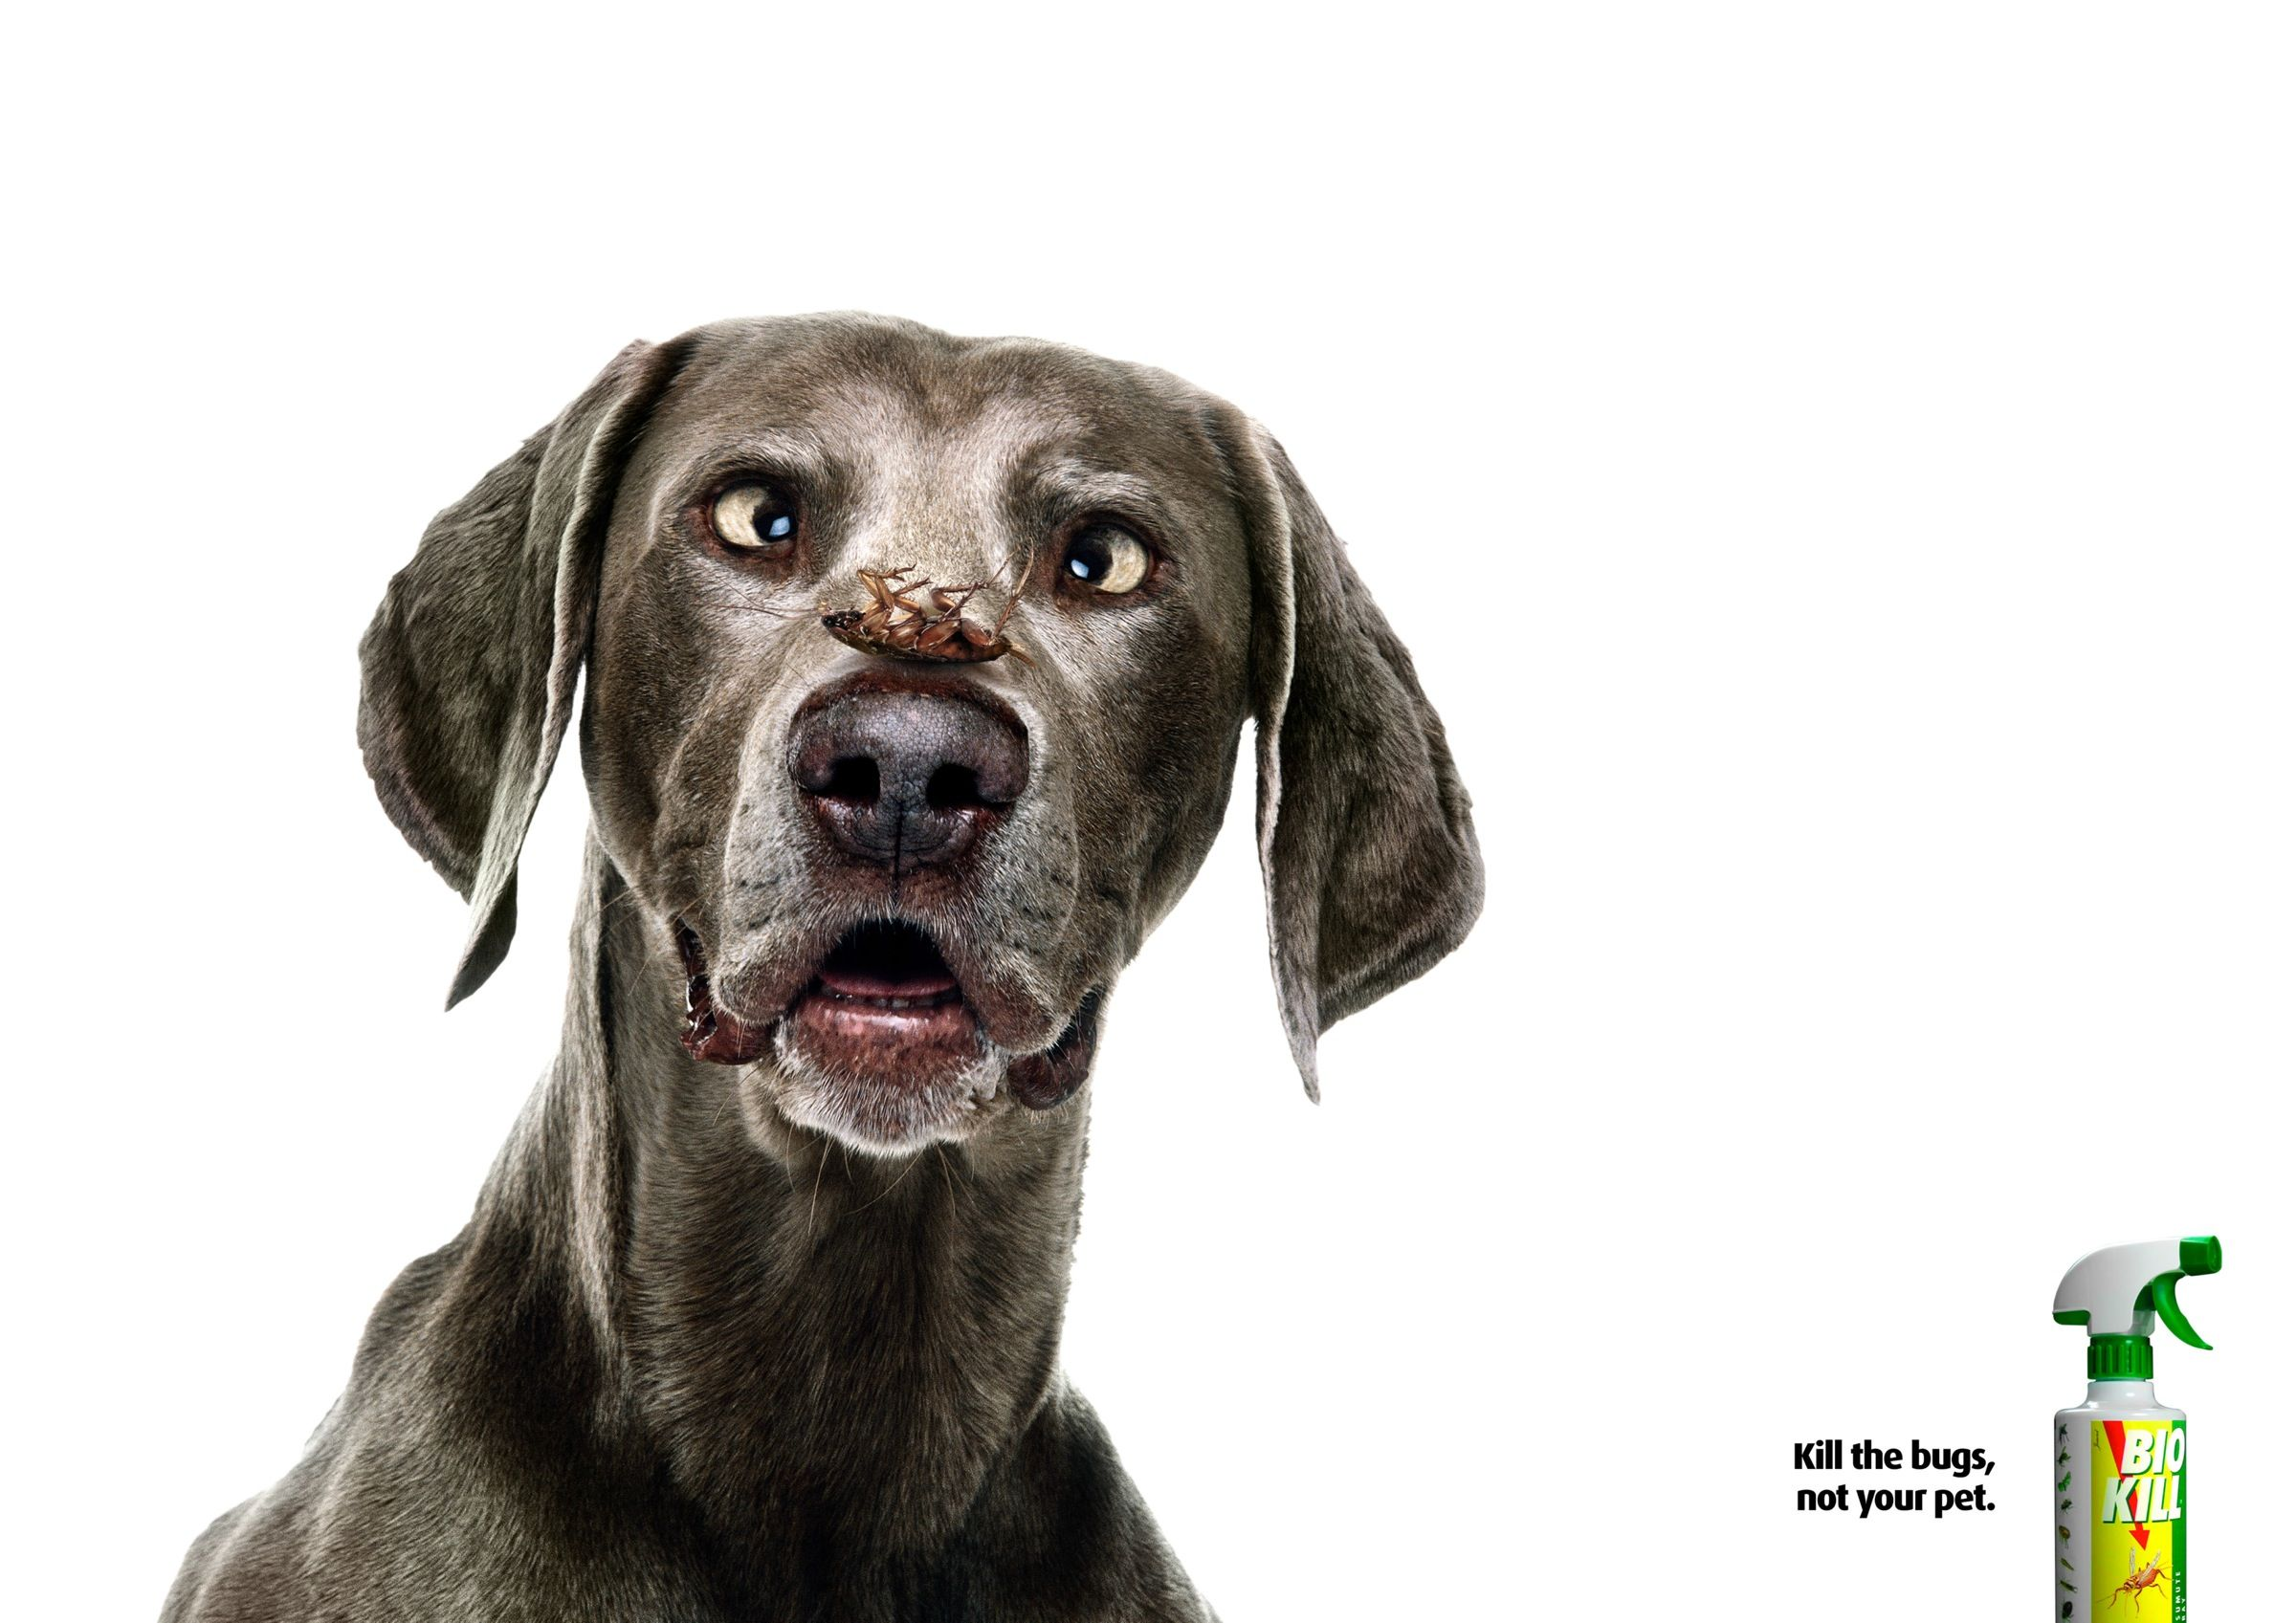 converse shoes advertisement appeal to fear commercials with dog